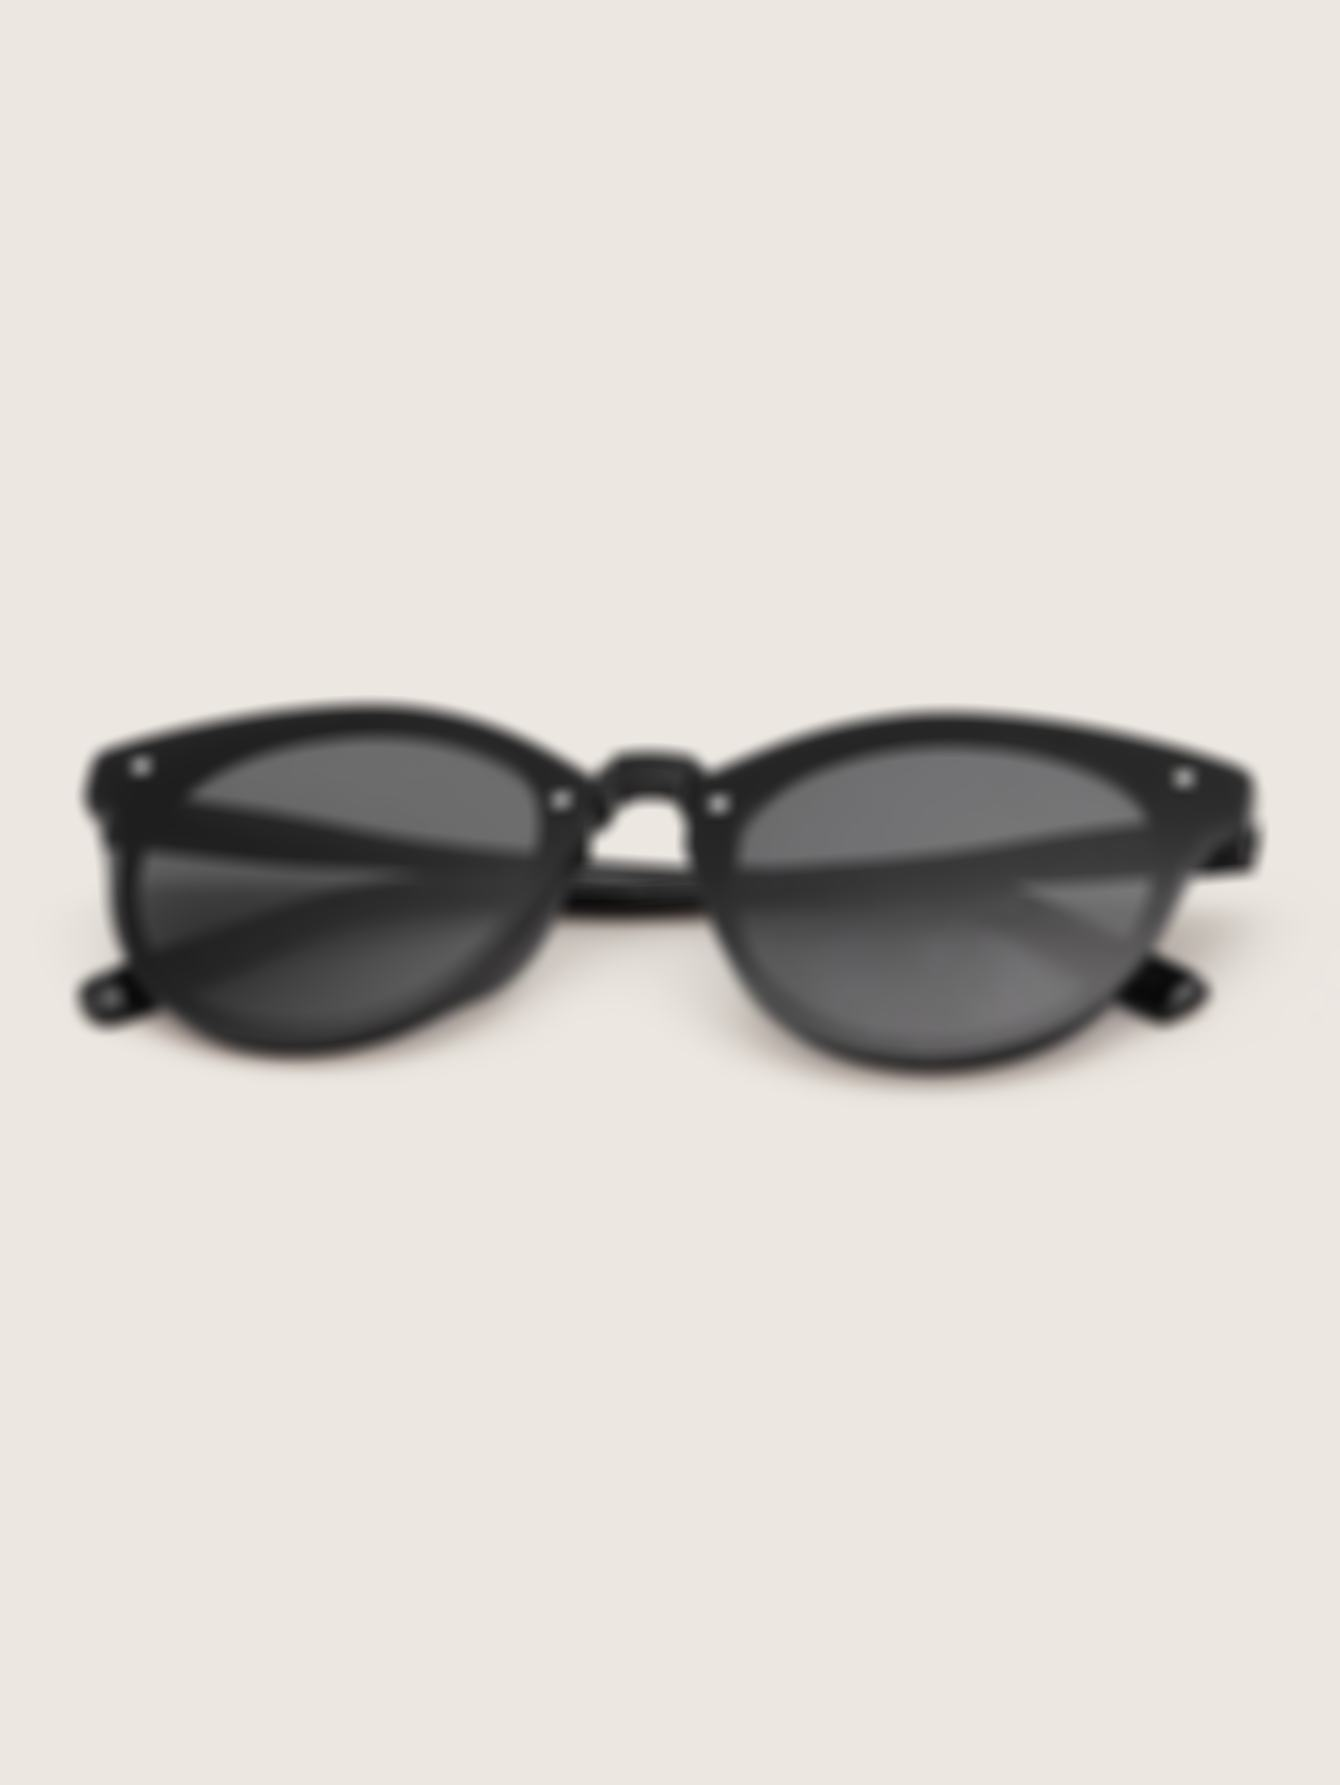 Rivet Decor Flat Lens Sunglasses With Case